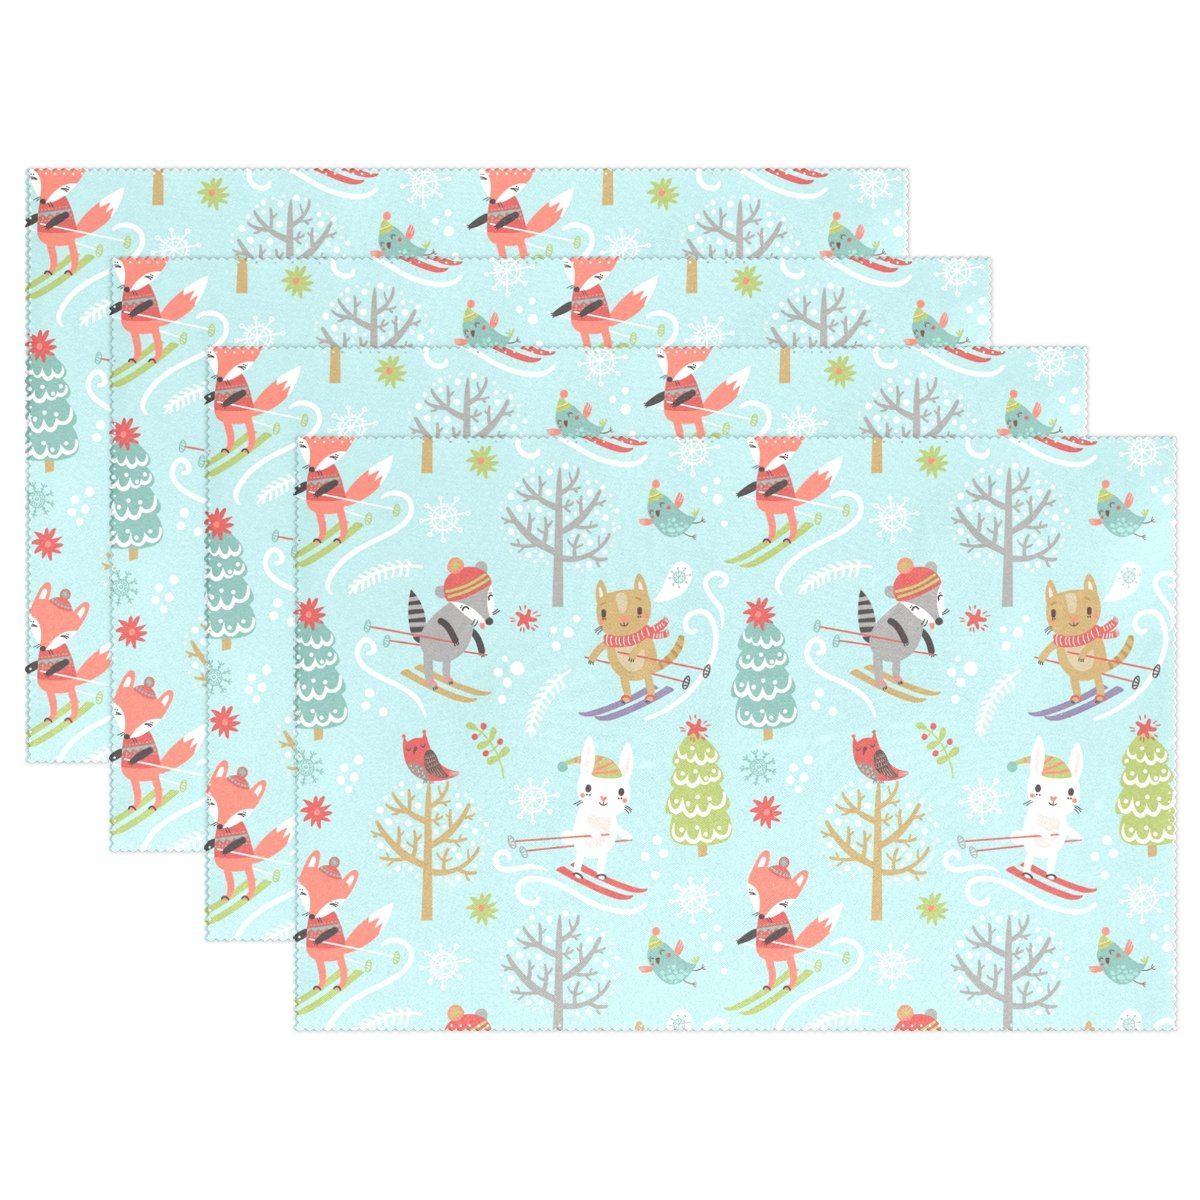 Top Carpenter Christmas Tree And Cute Animals Place Mats Washable Heat Resistant Polyester Table Mats 12'' x 18'', Set of 4